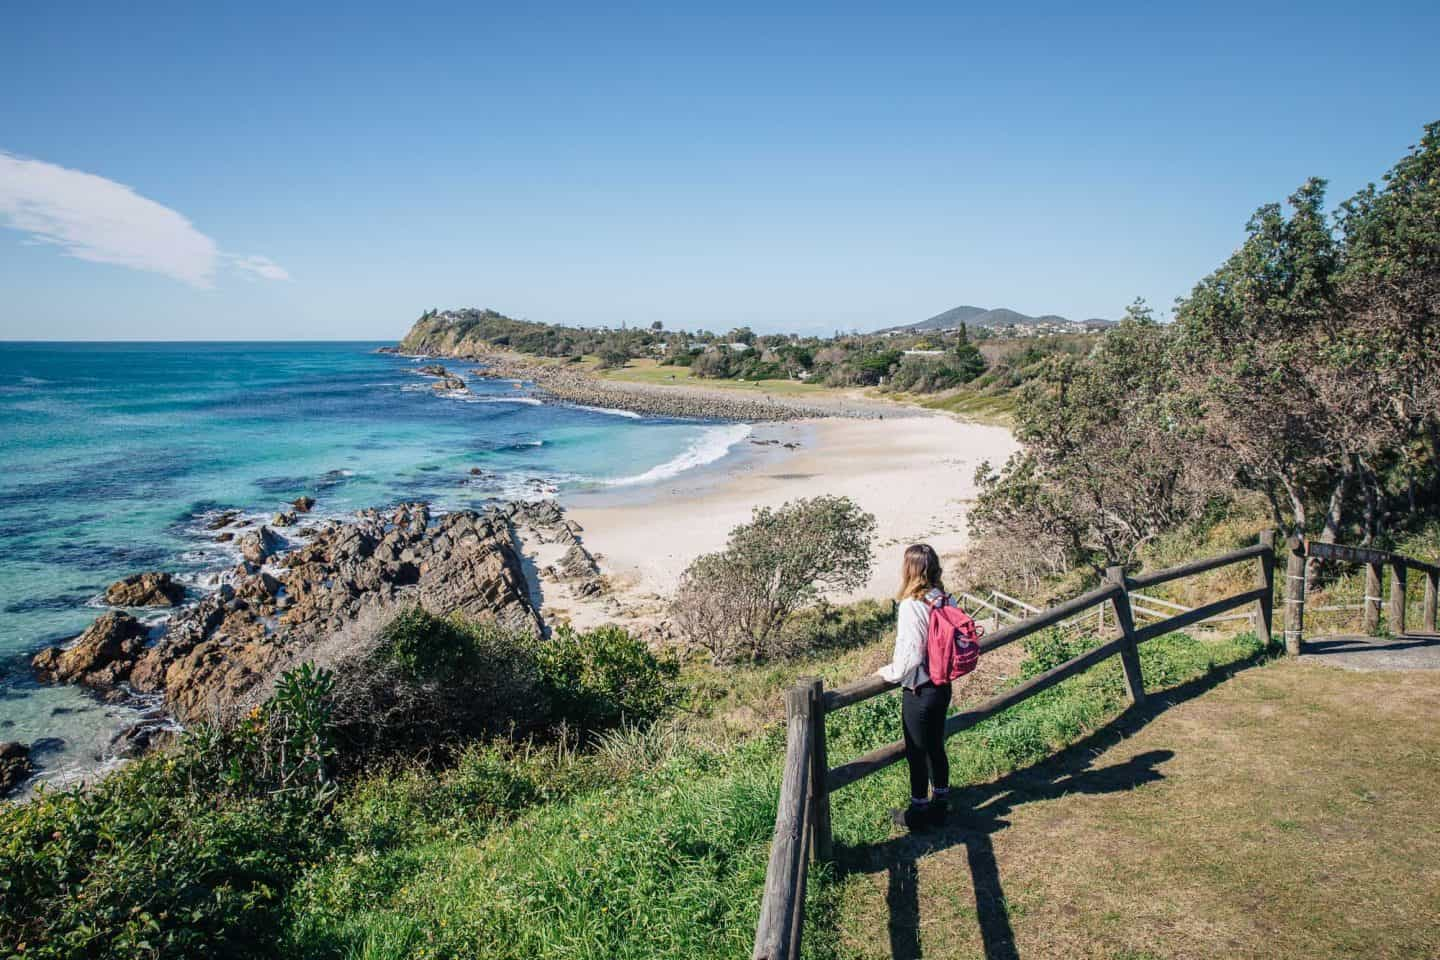 Forster nsw, things to do in forster, what to do in forster, things to do forster, camping in forster, beaches in forster, beaches at forster, pebbly beach forster